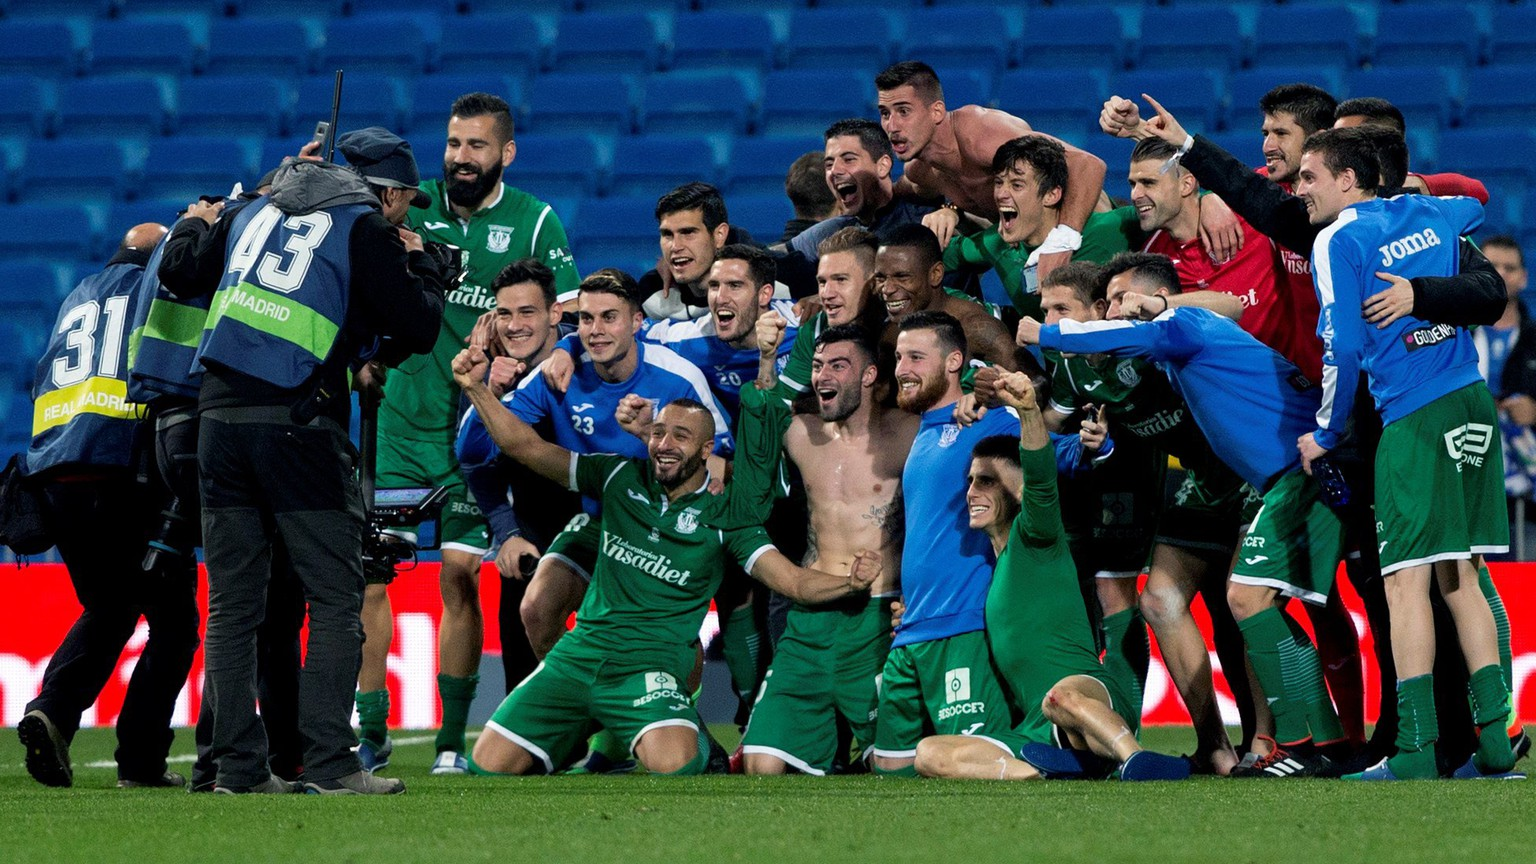 epa06471890 Leganes' players celebrate the victory during the King's Cup quarter-final second leg match between Real Madrid and Leganes at the Santiago Bernabeu stadium in Madrid, Spain, 24 January 2018.  EPA/Rodrigo Jimenez